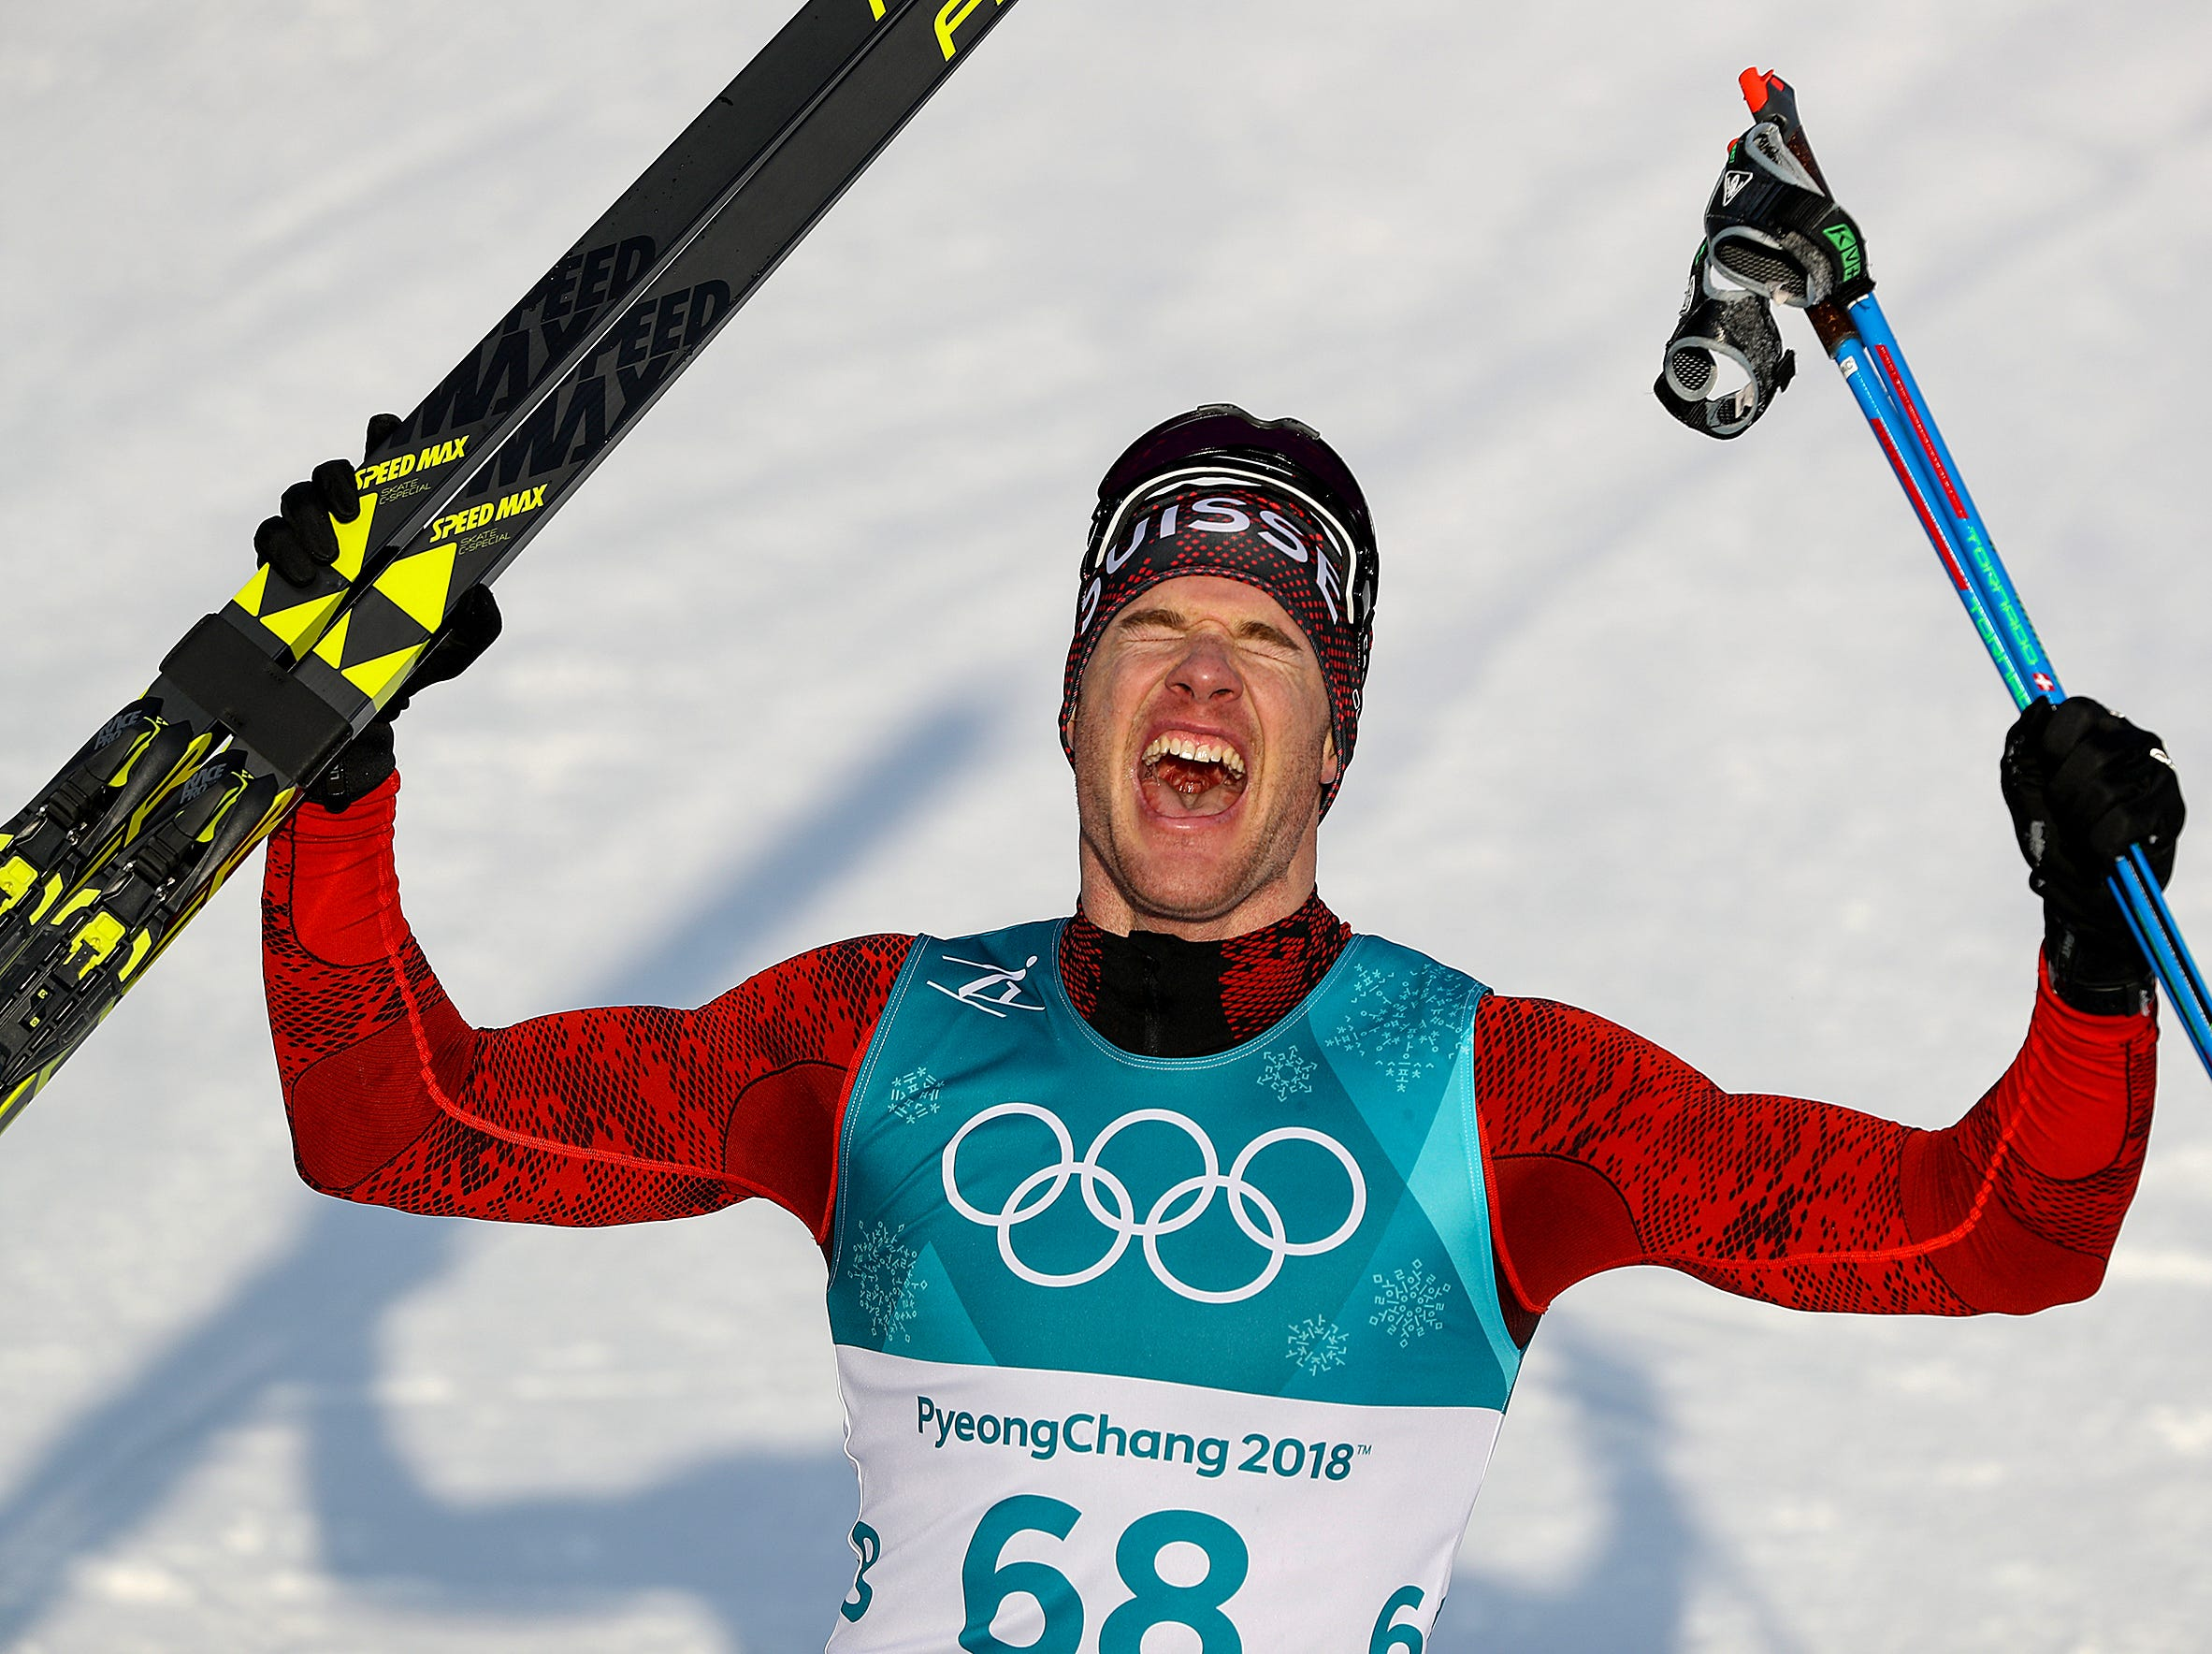 Feb 16, 2018; Pyeongchang, South Korea; Switzerland's Dario Cologna celebrates his gold medal win following the Men's 15k free Cross Country finals during the Pyeongchang 2018 Olympic Winter Games at Alpensia Cross-Country Centre. Mandatory Credit: Matt Kryger-USA TODAY Sports